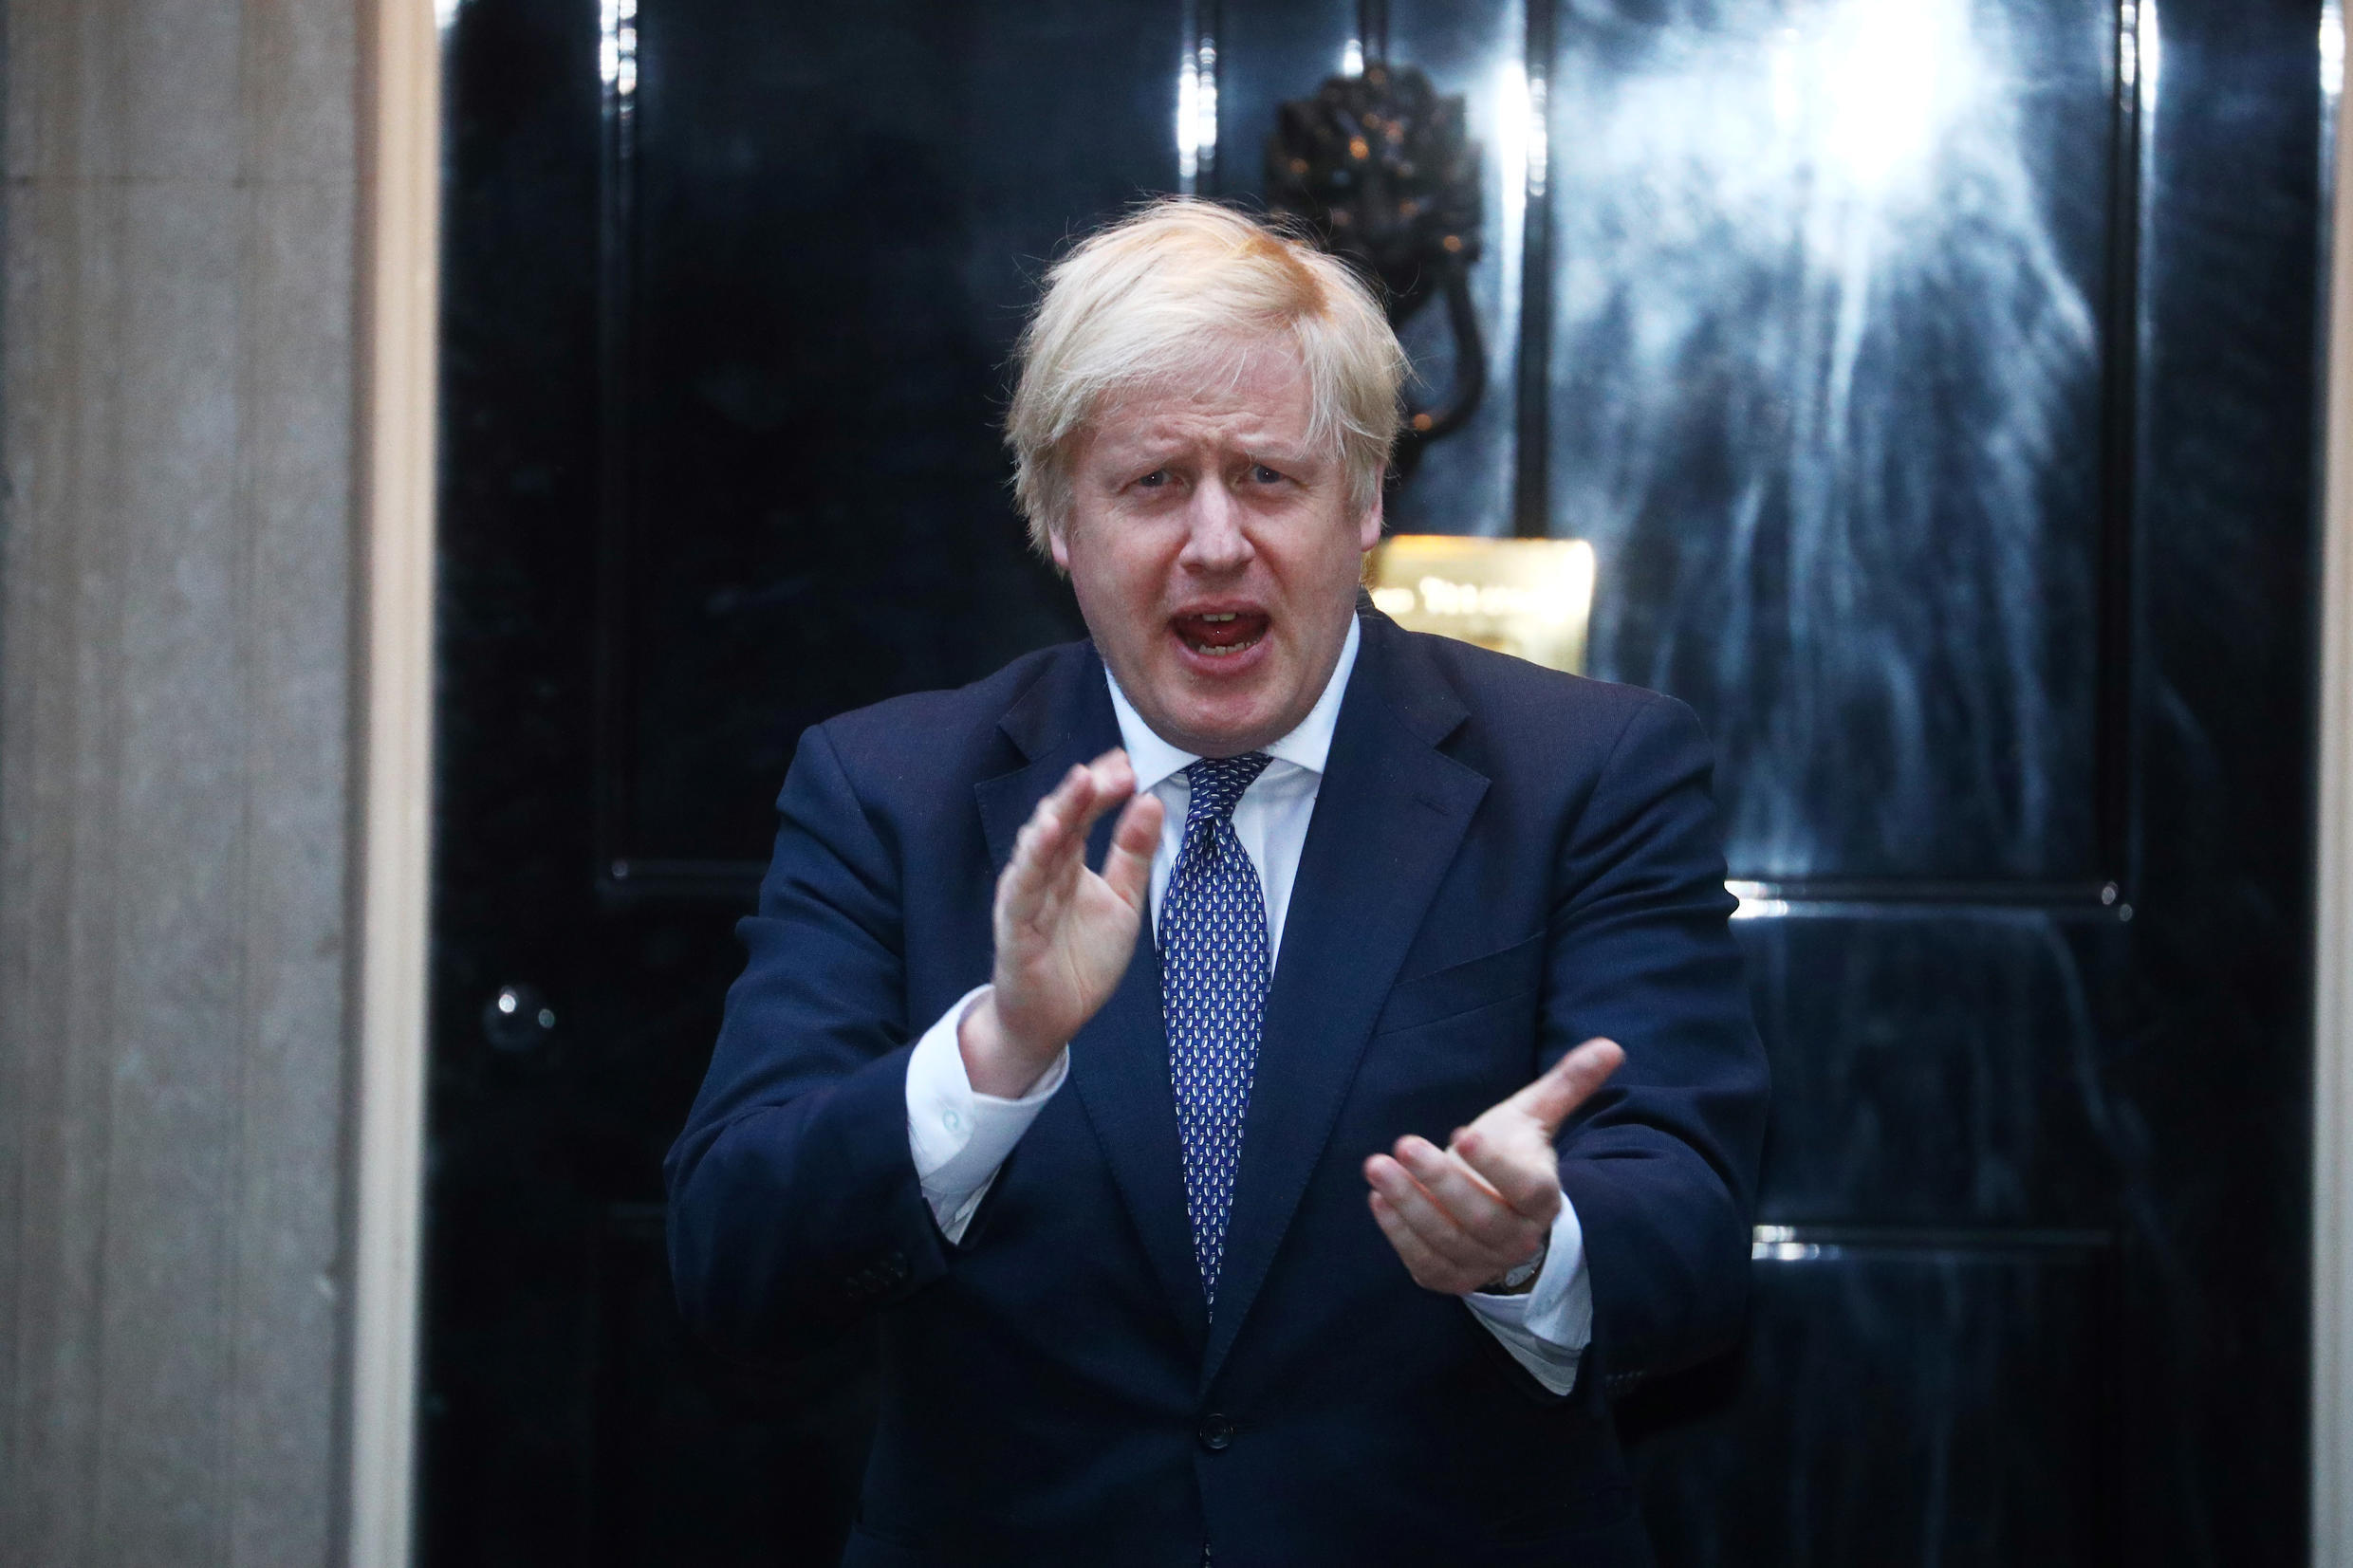 Britain's Prime Minister Boris Johnson applauds outside 10 Downing Street during the Clap for our Carers campaign in support of the NHS, following the outbreak of the coronavirus disease (COVID-19), in London, Britain, April 30, 2020.